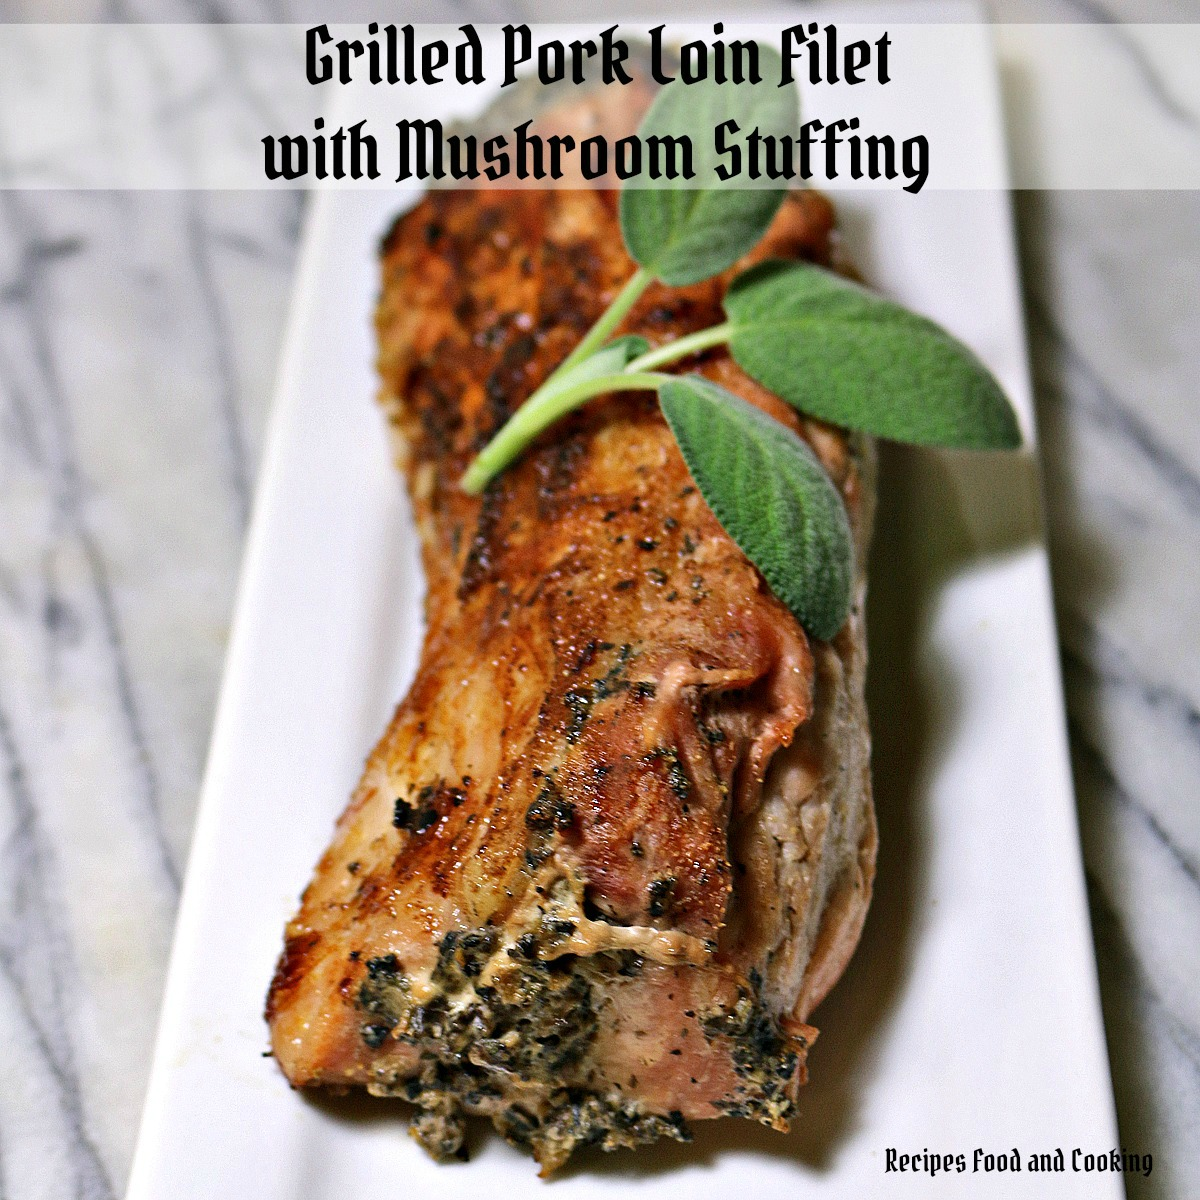 Grilled Pork Filet with Mushroom Stuffing